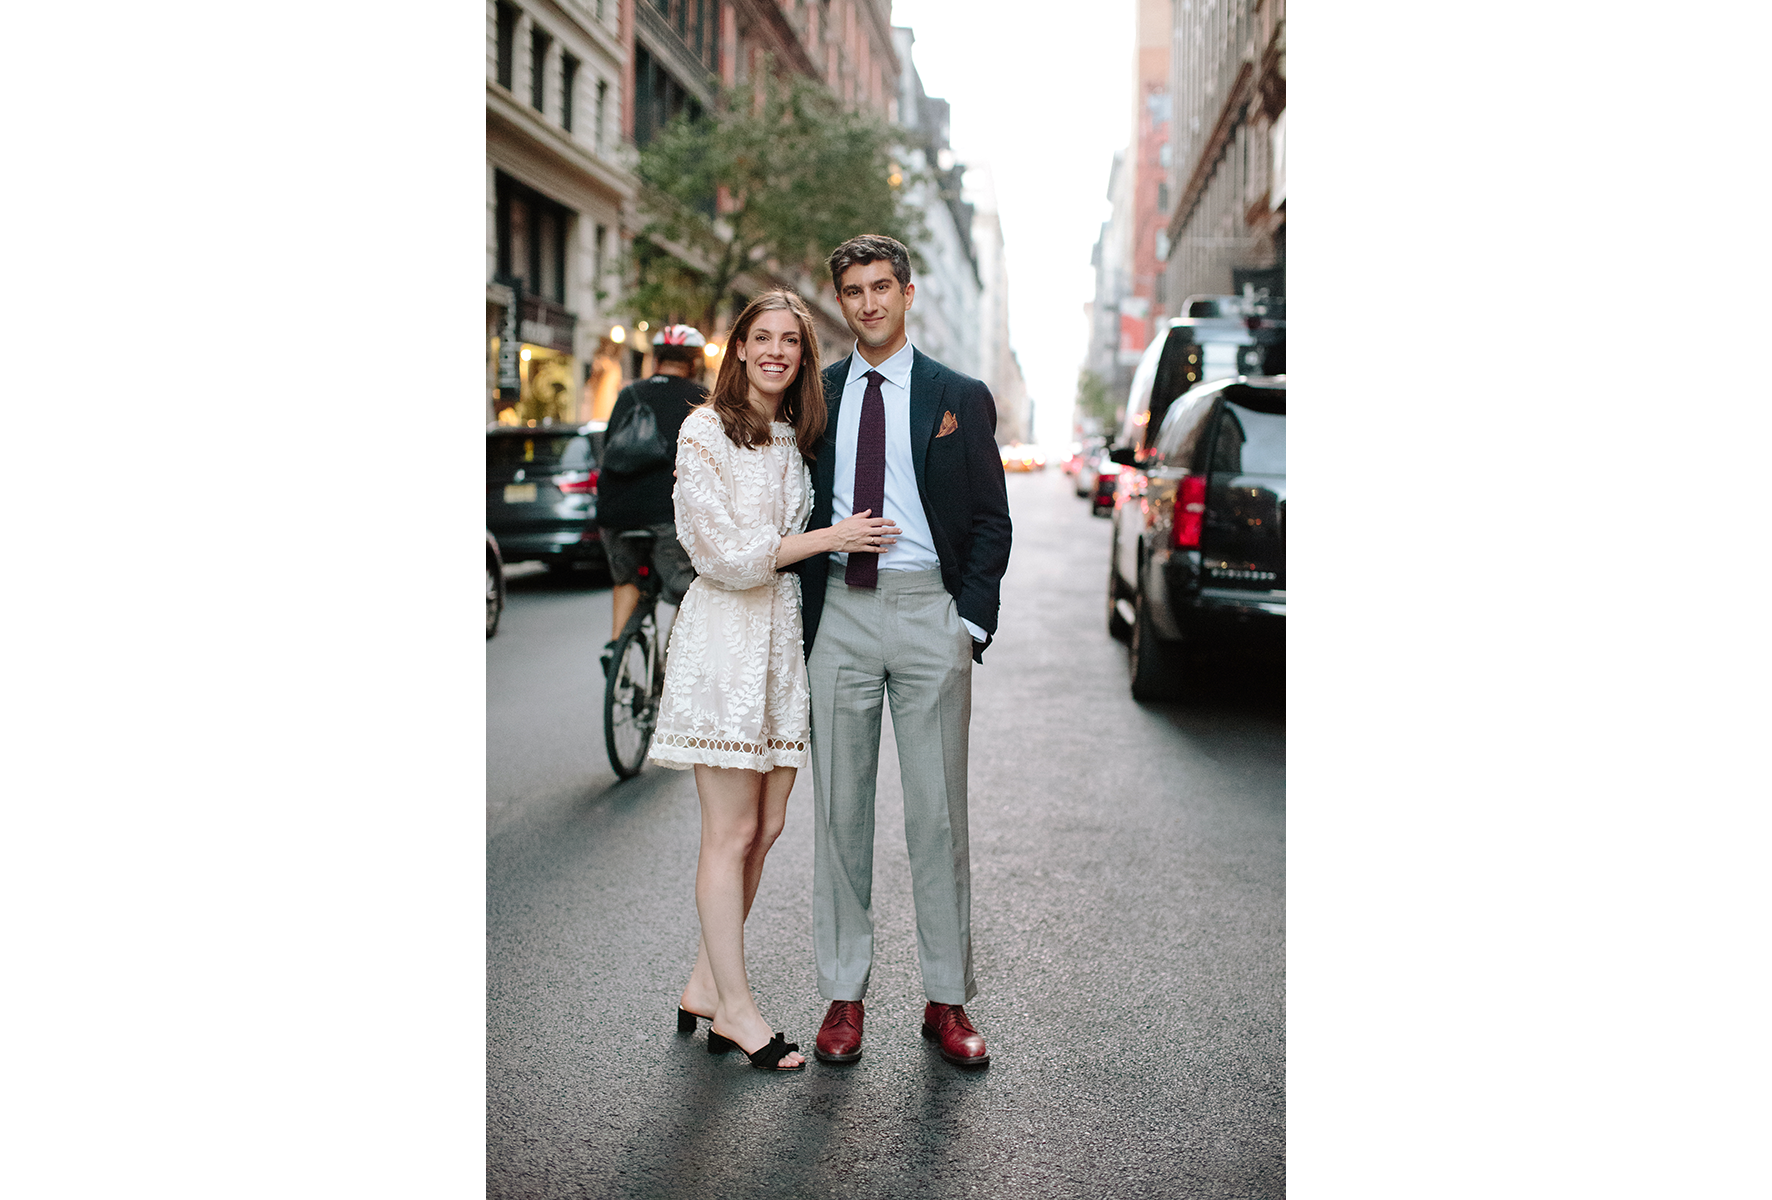 raquelreis_wedding_photography_engagements_023.png